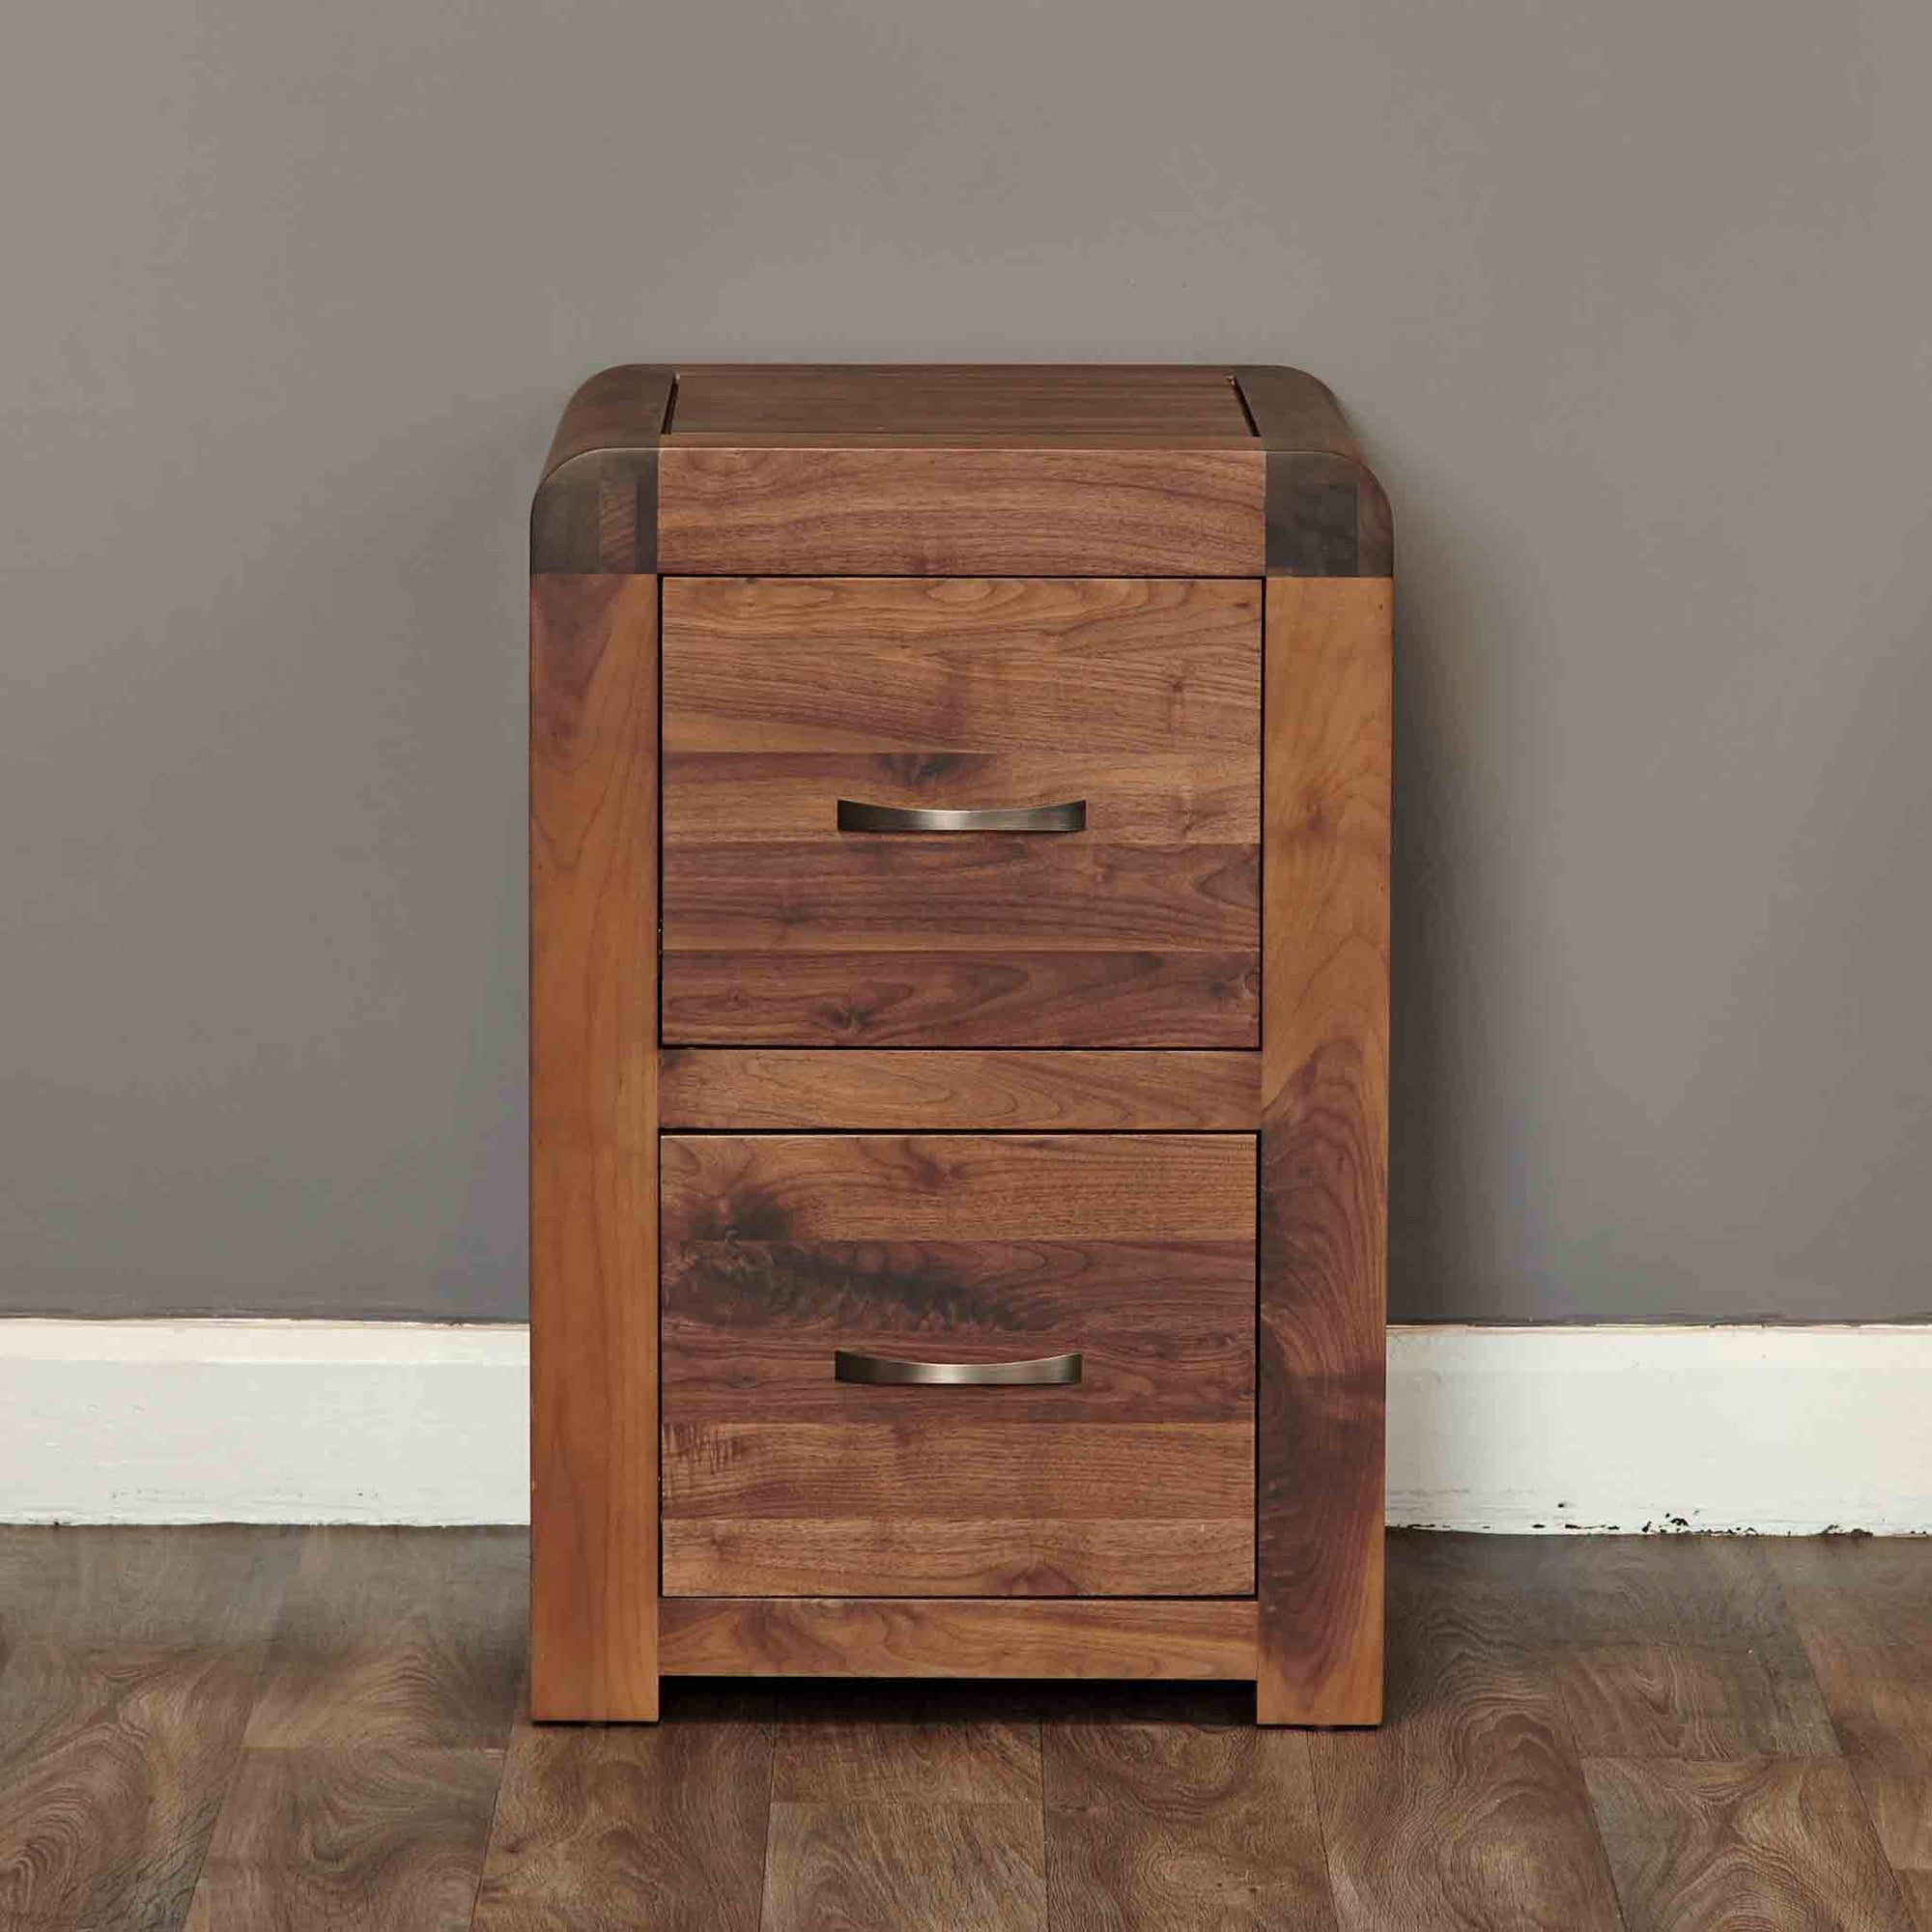 The Salem Walnut Small 2 Drawer Office Filing Cabinet from Roseland Furniture